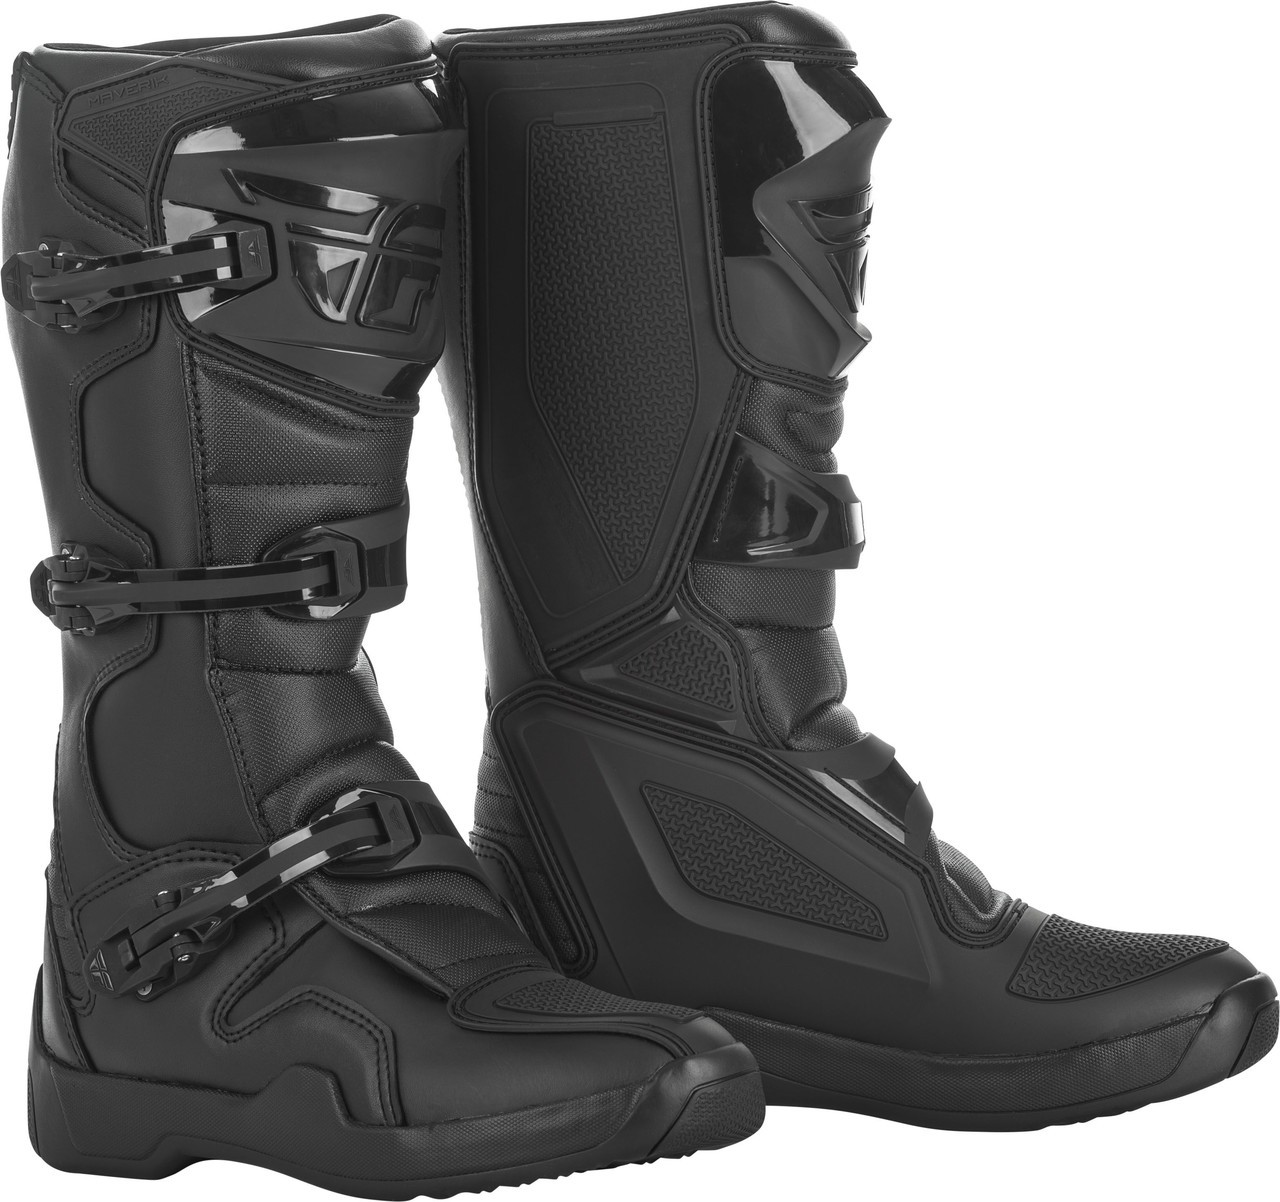 Bota FLY Maverik LT